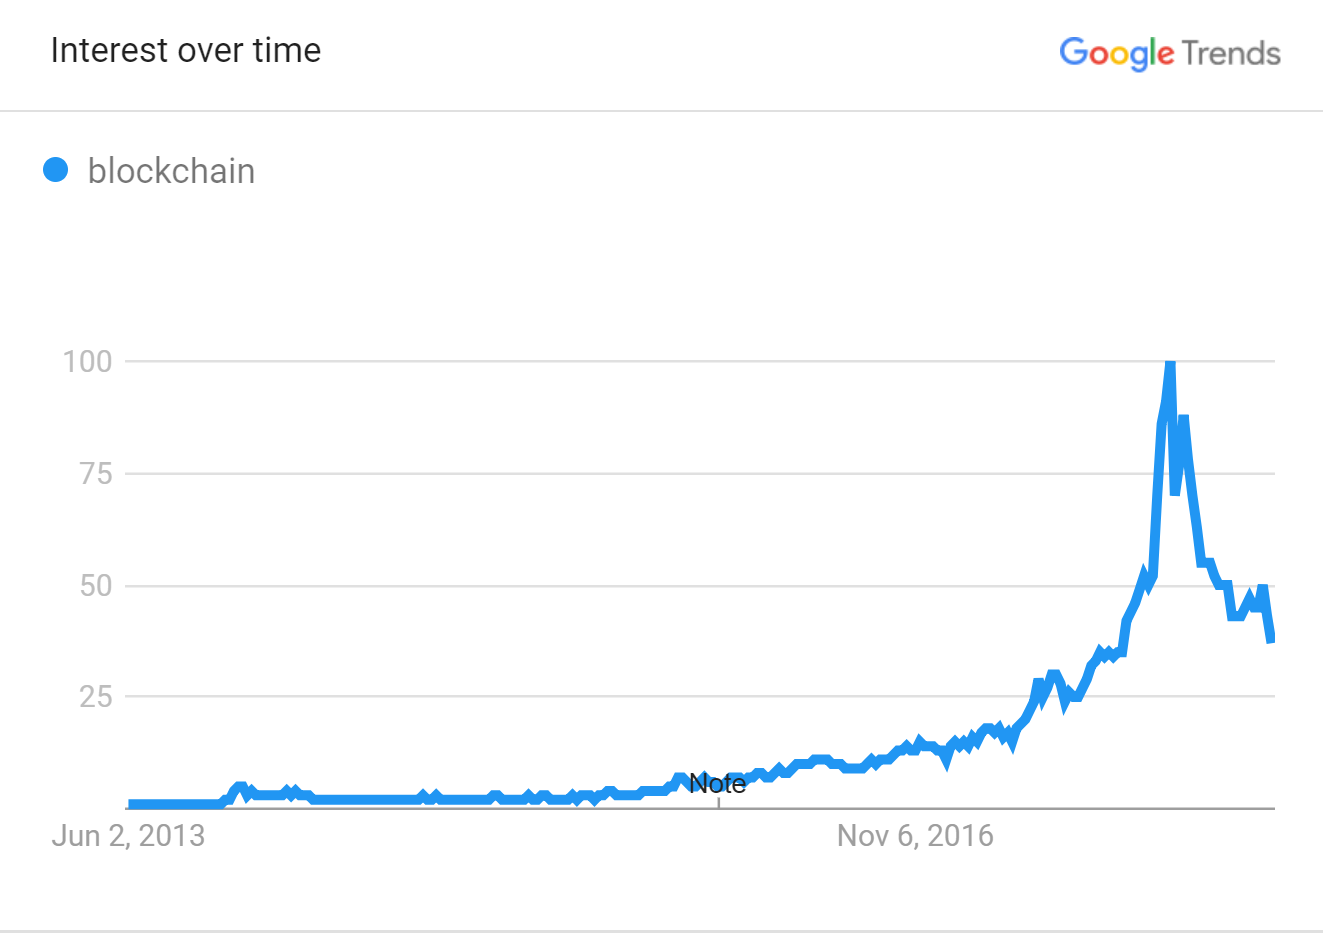 blockchain interest over time.PNG